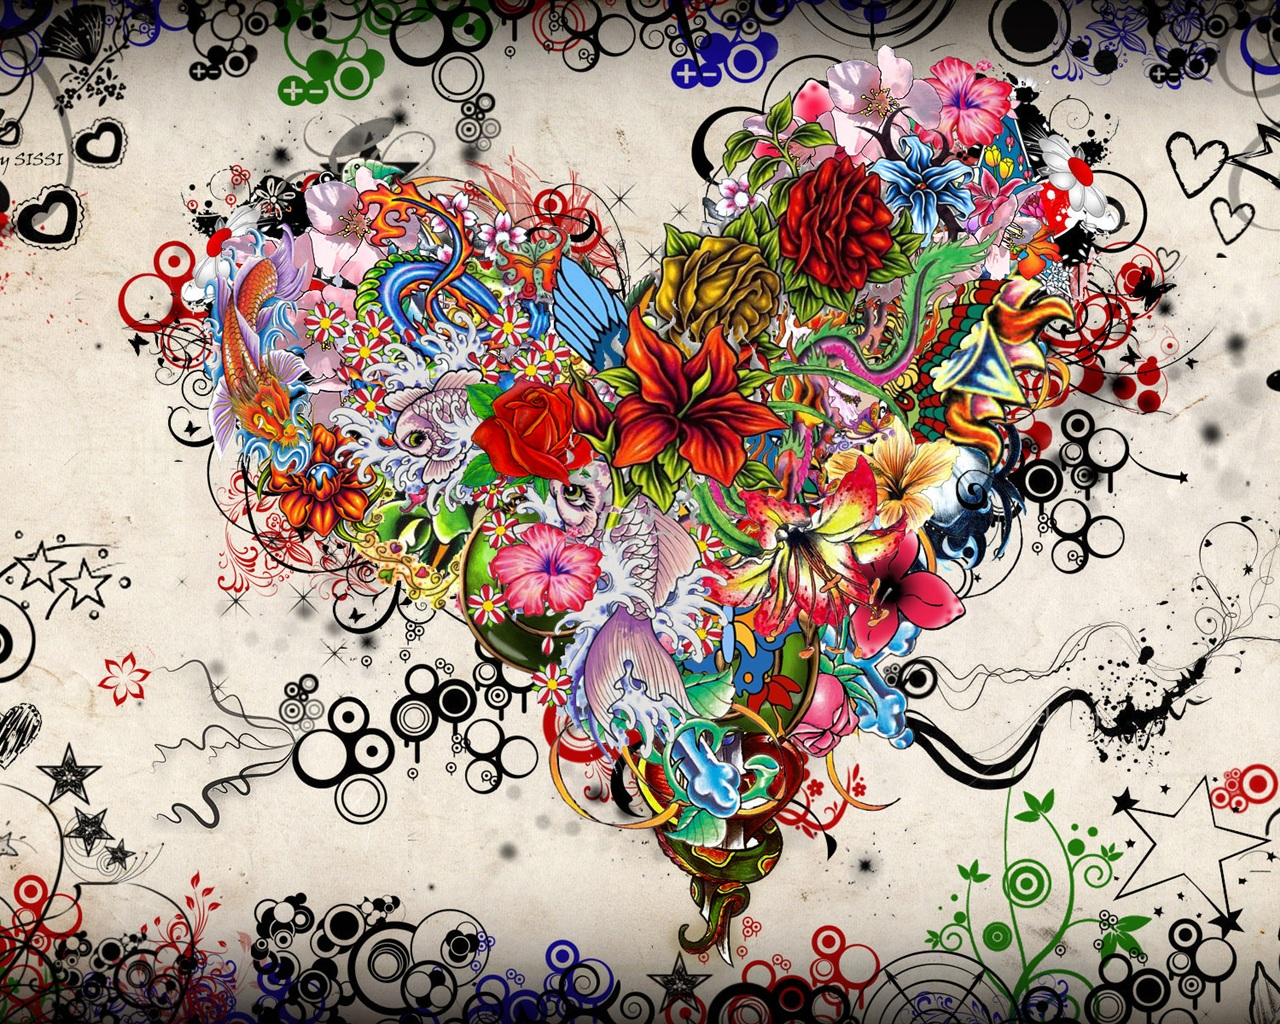 Colorful heart-shaped Love Art Picture wallpaper - 1280x1024